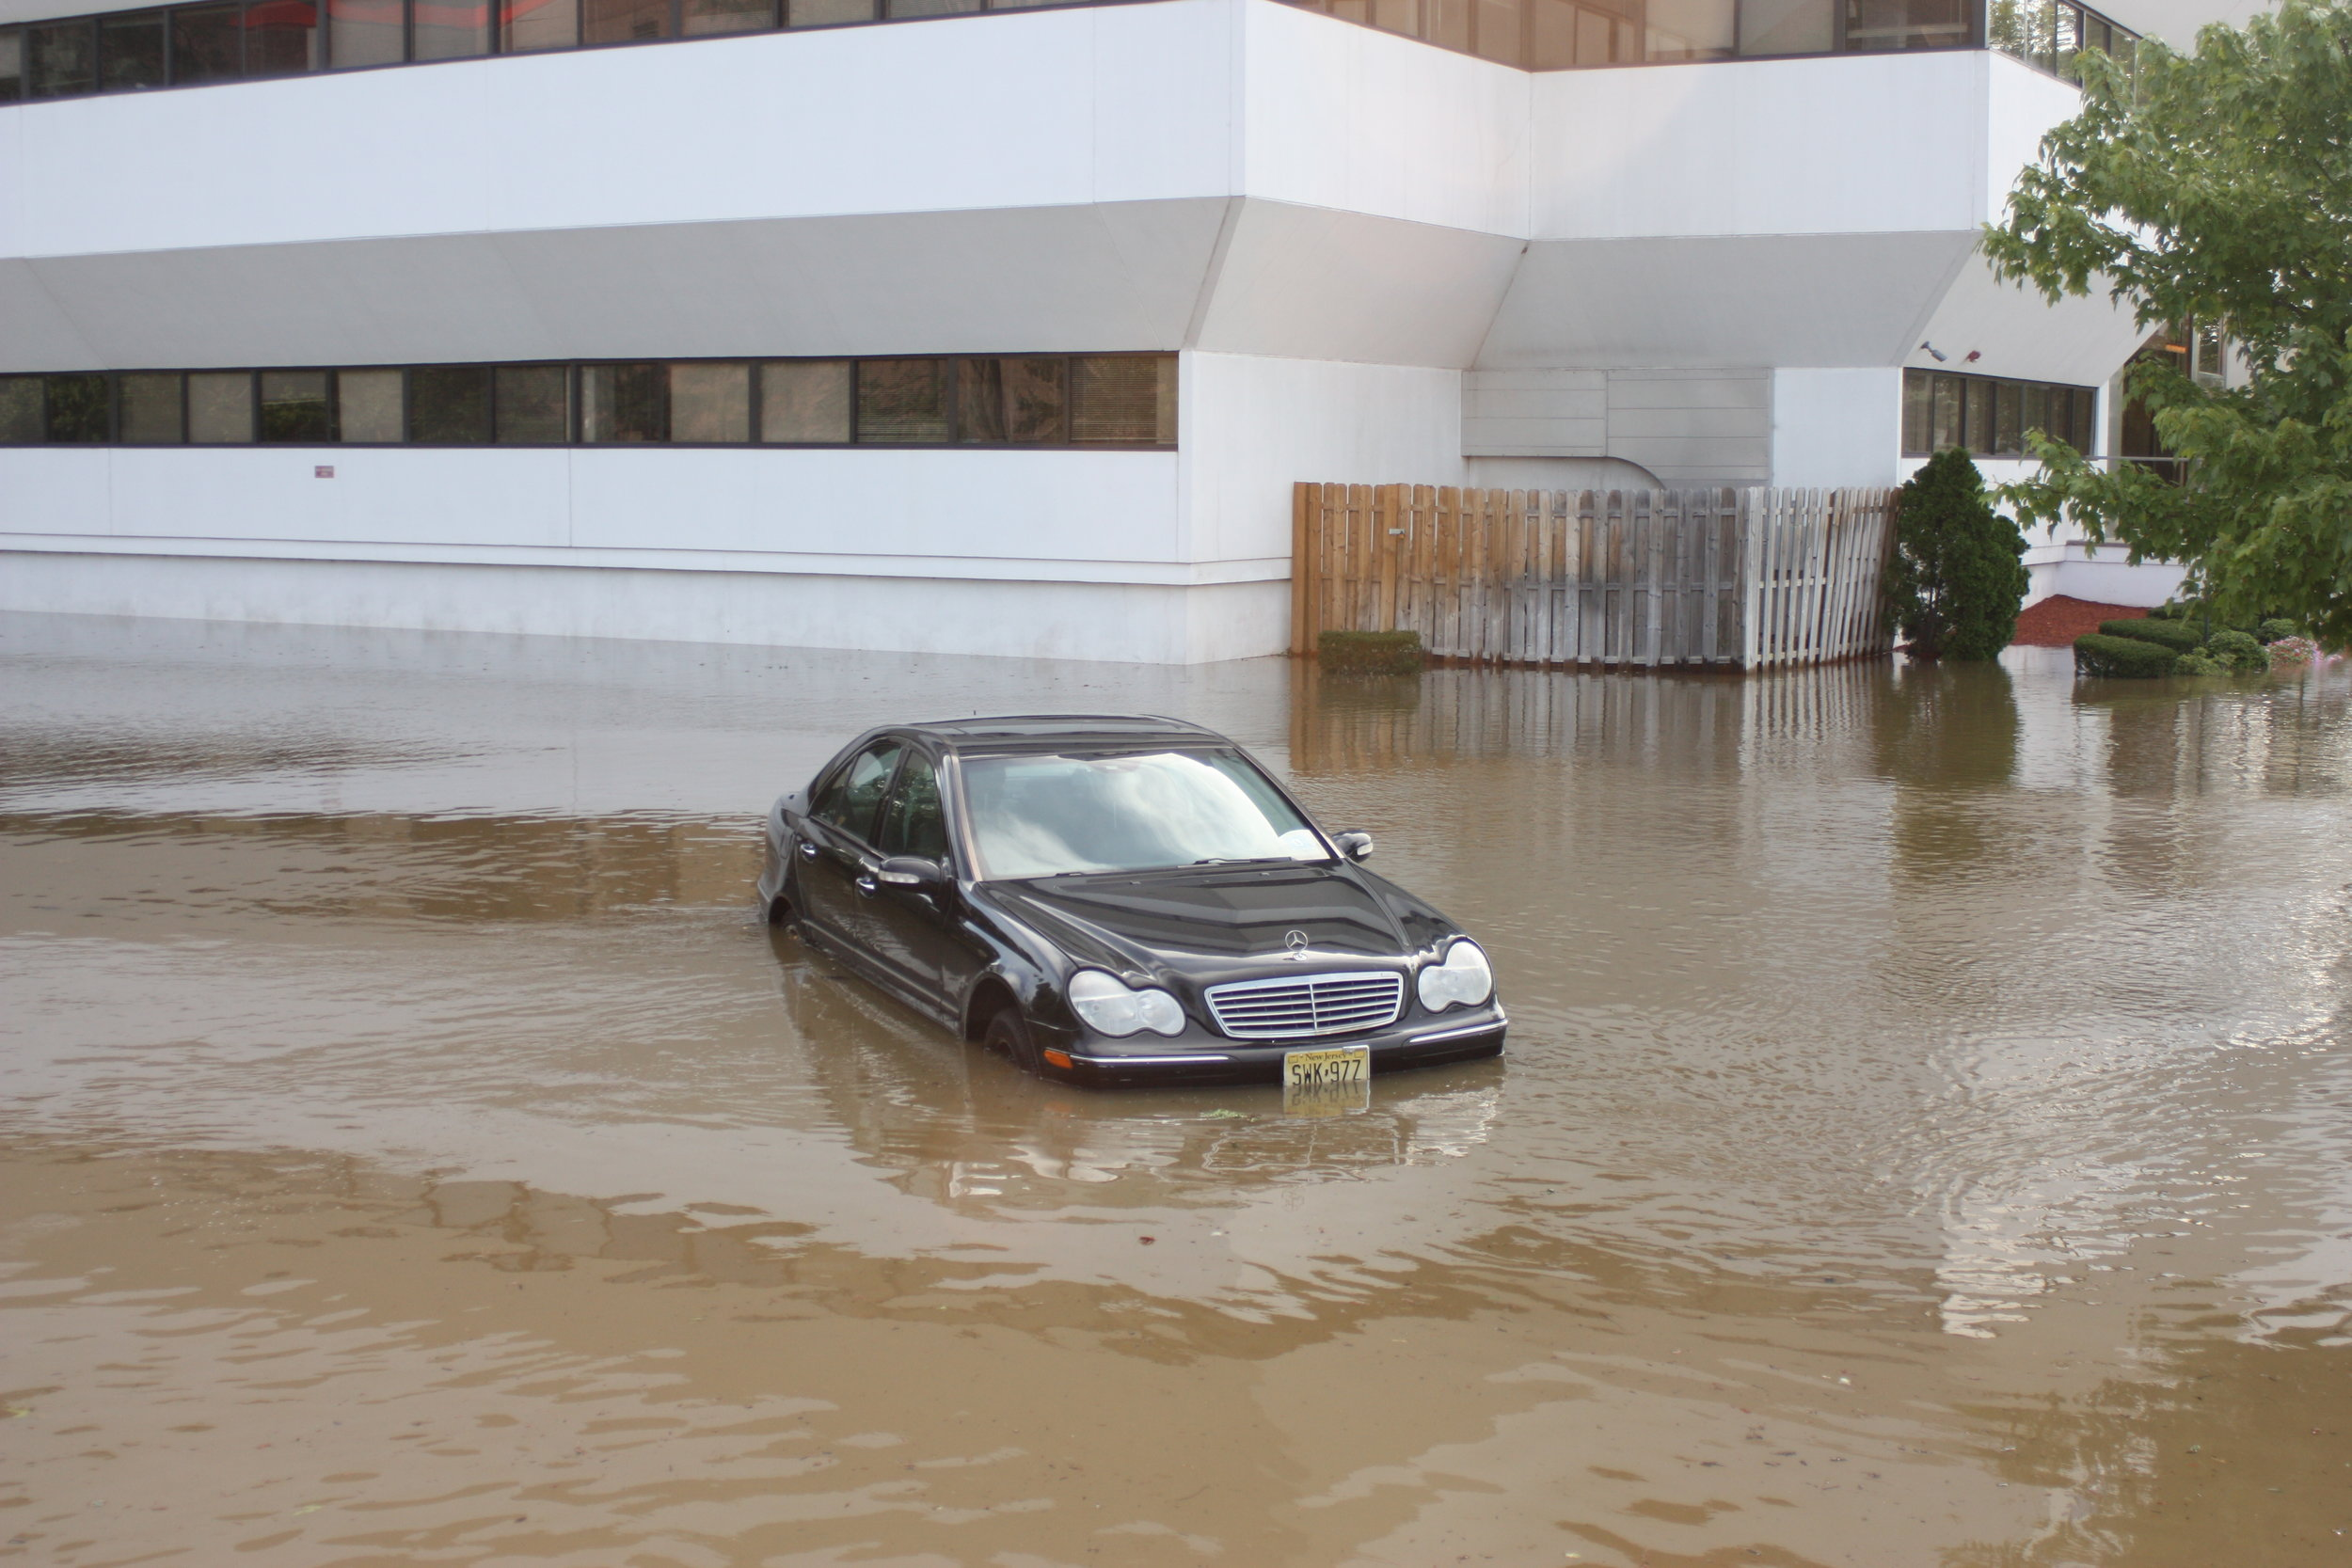 flood bldg car.JPG